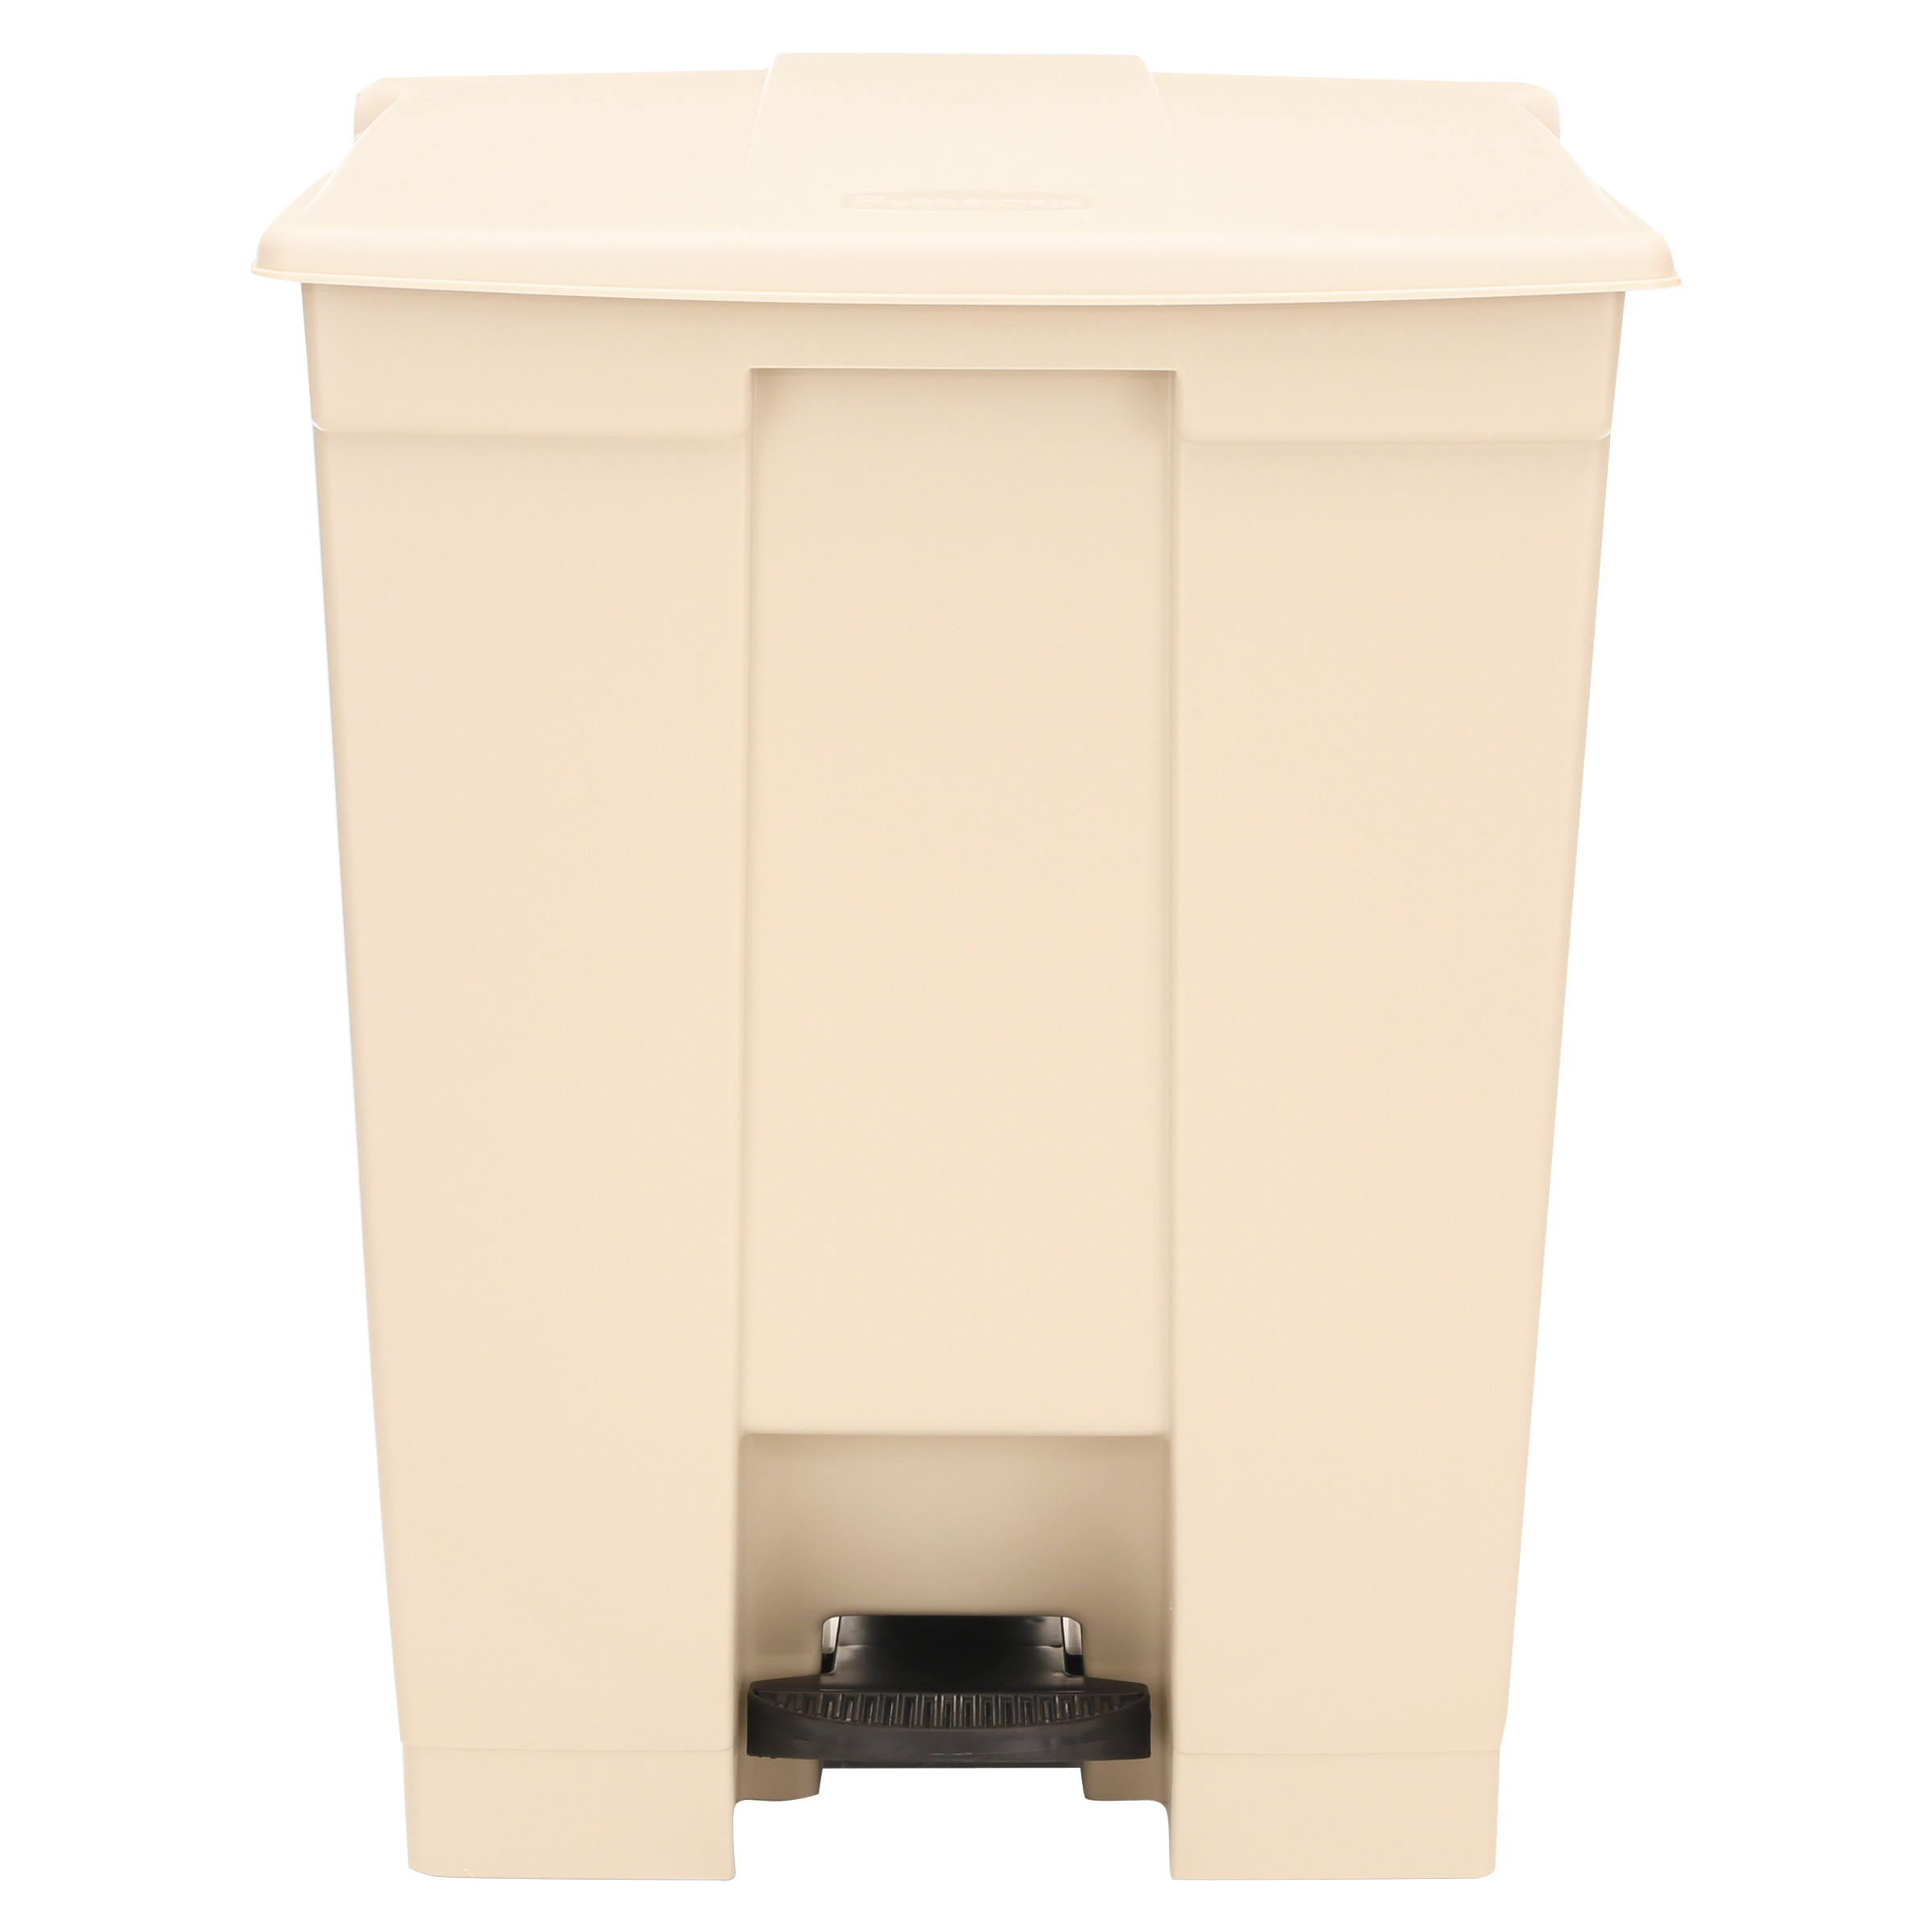 Rubbermaid Commercial Step-On Receptacle, Rectangular, Polyethylene, 18gal, Beige